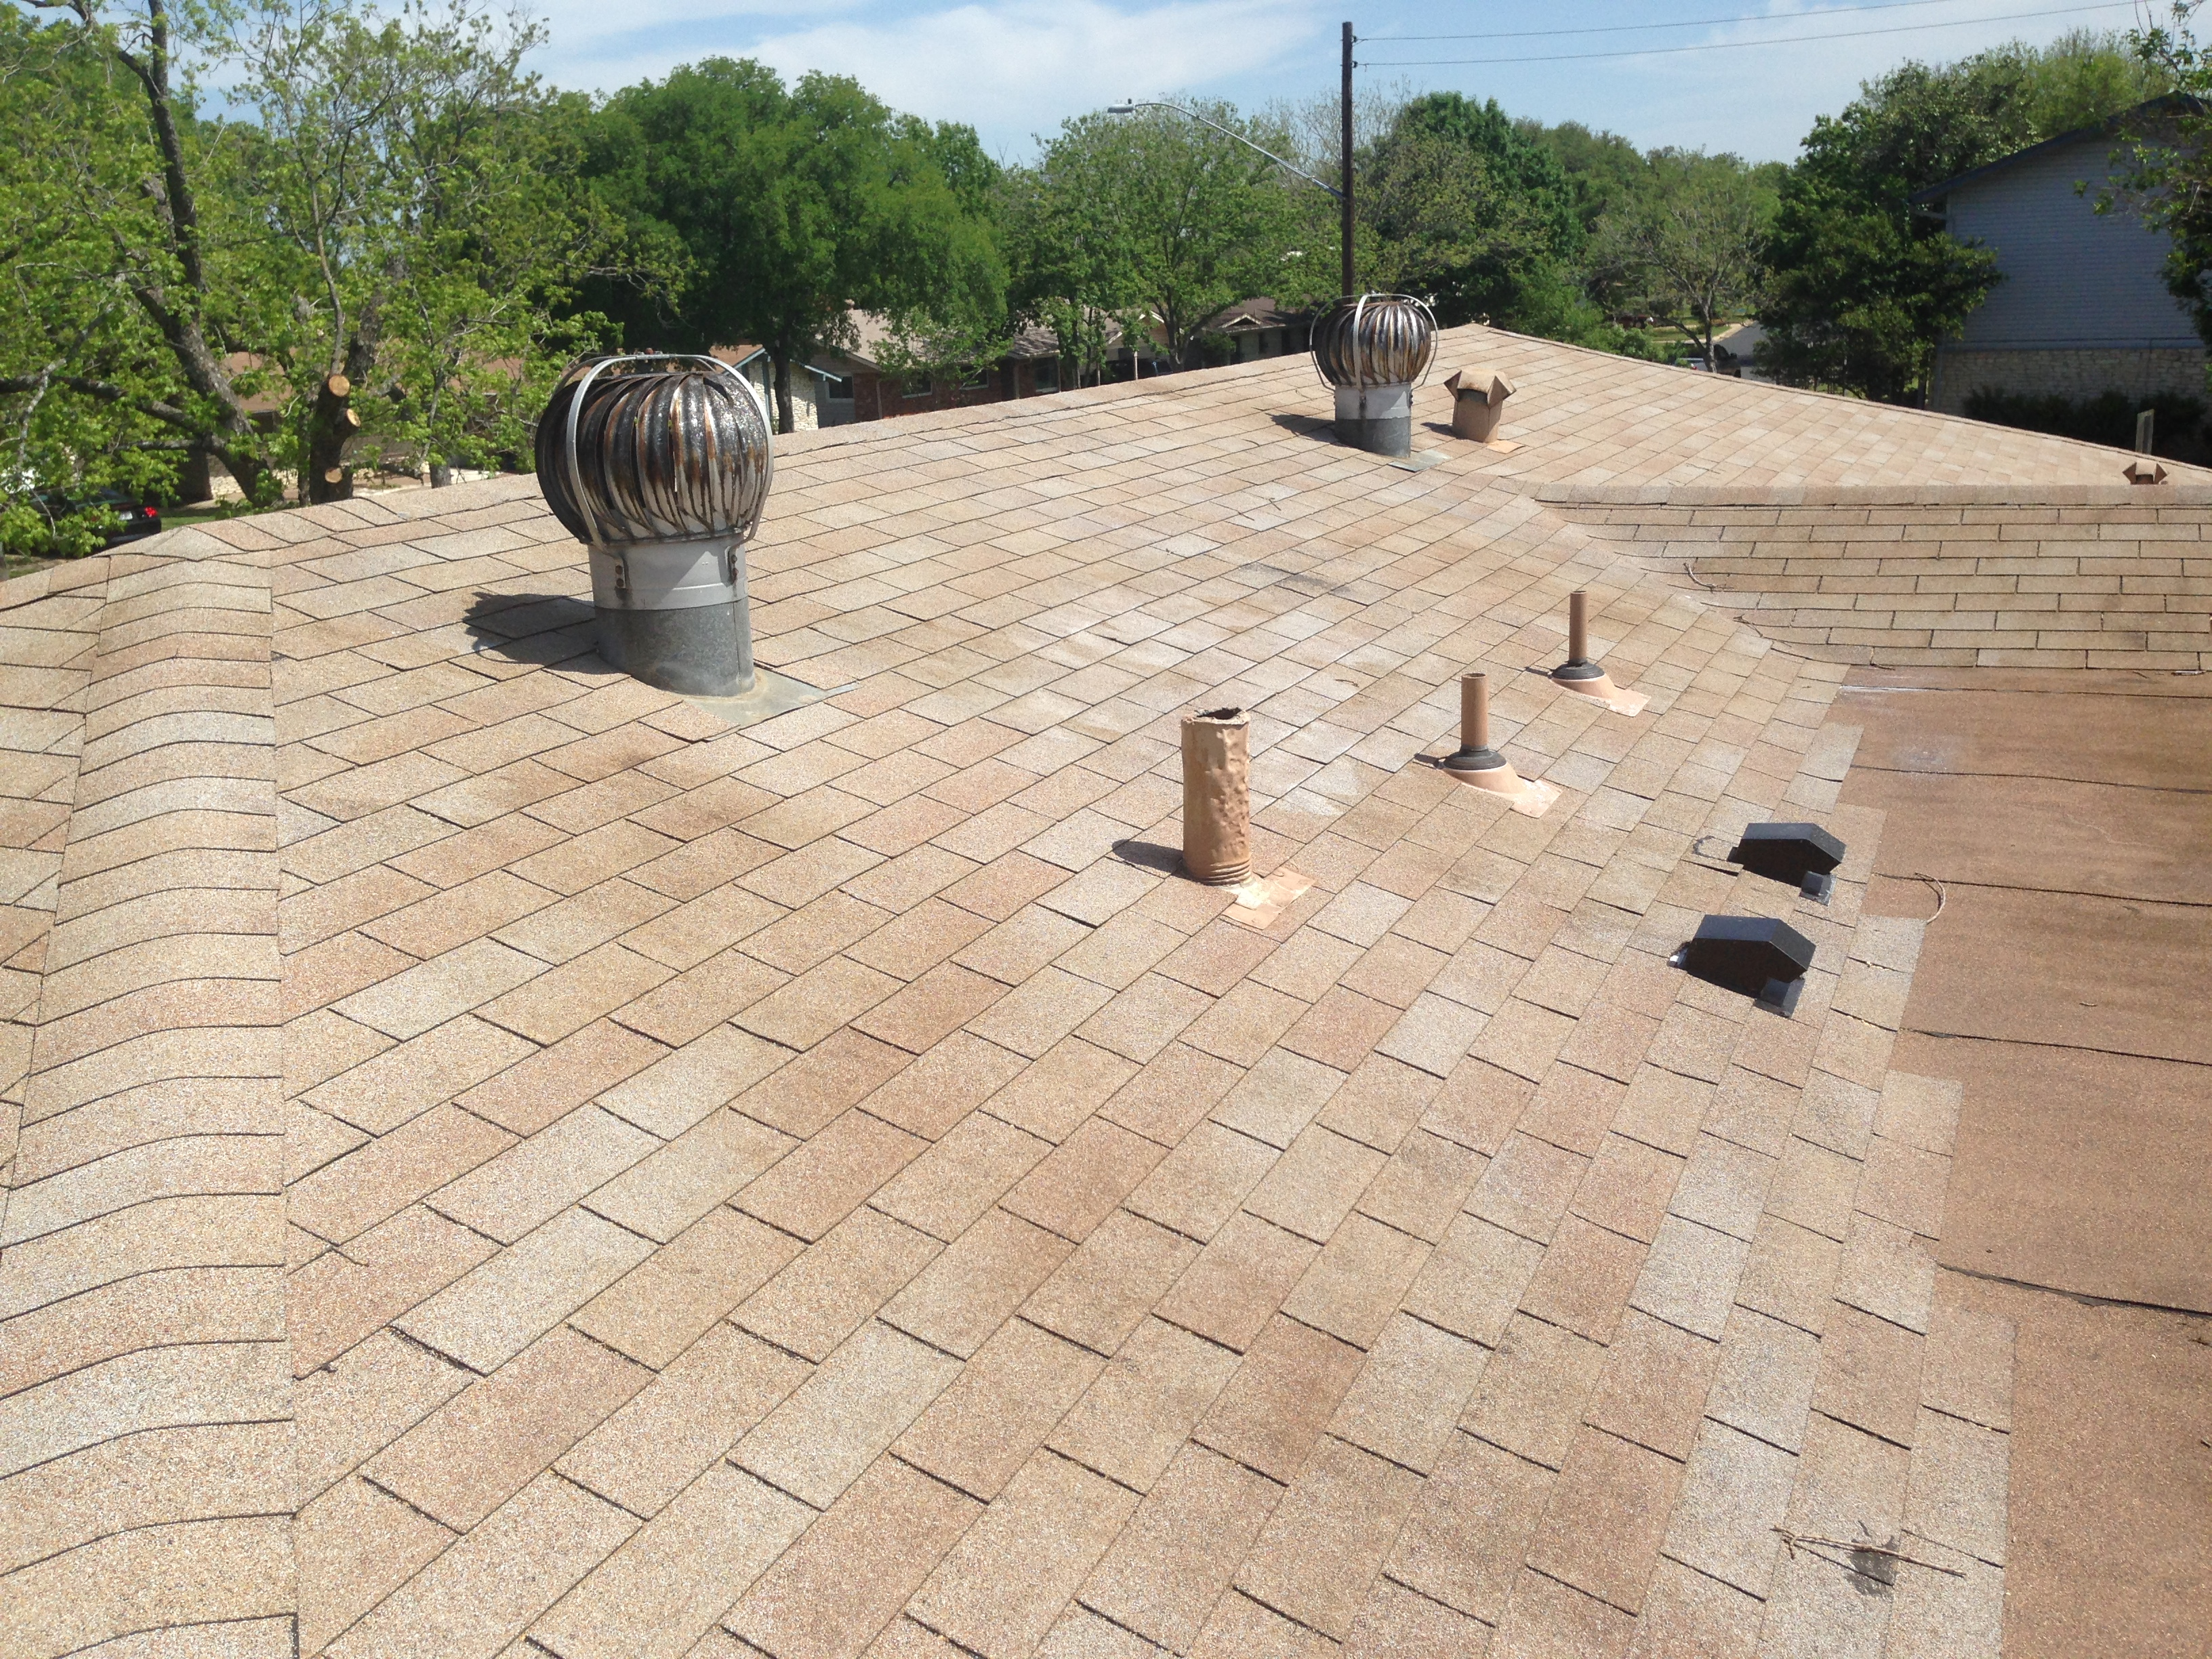 Blog sparkling clean window company blog Sparkling image roof exterior cleaning